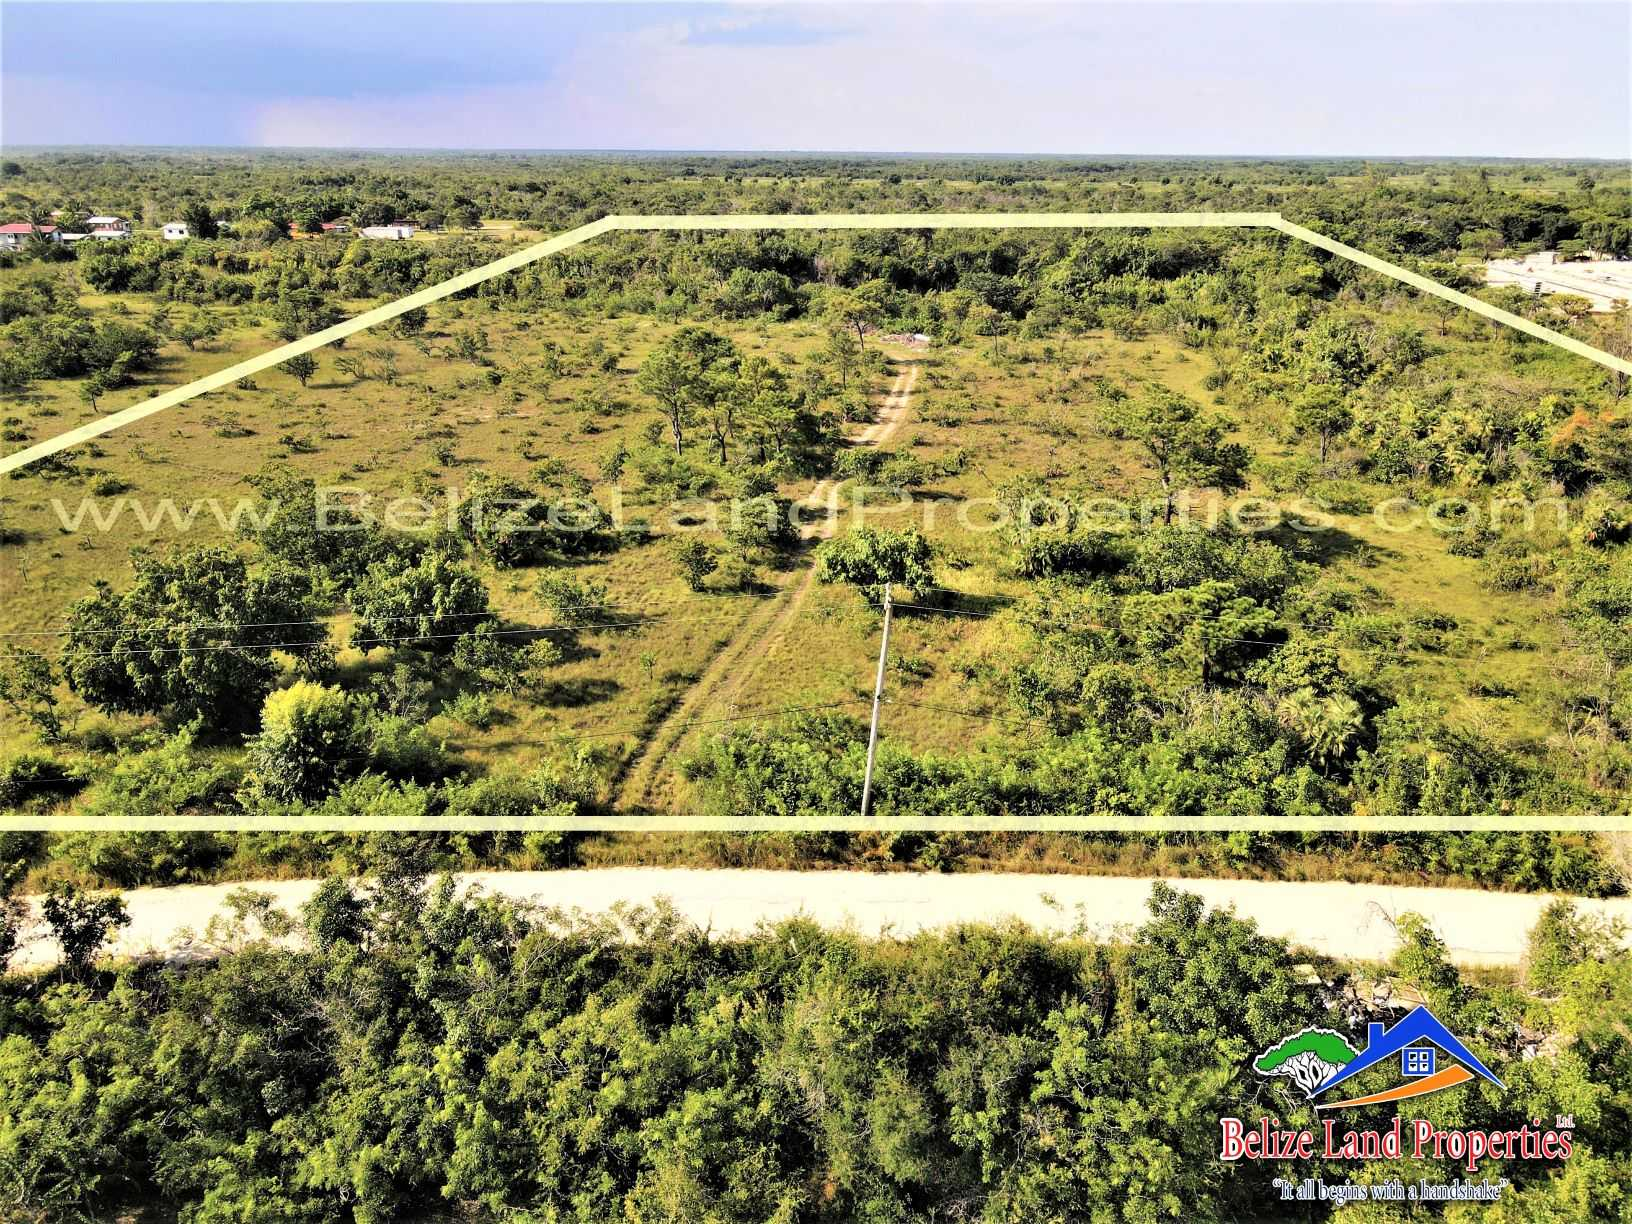 BZ157: 19.90 Acres Only 0.6 Miles off The Philip Goldson Highway, near Los Lagos Belize District! A Belize Real Estate For Sale Great For Commercial or Residential Potential